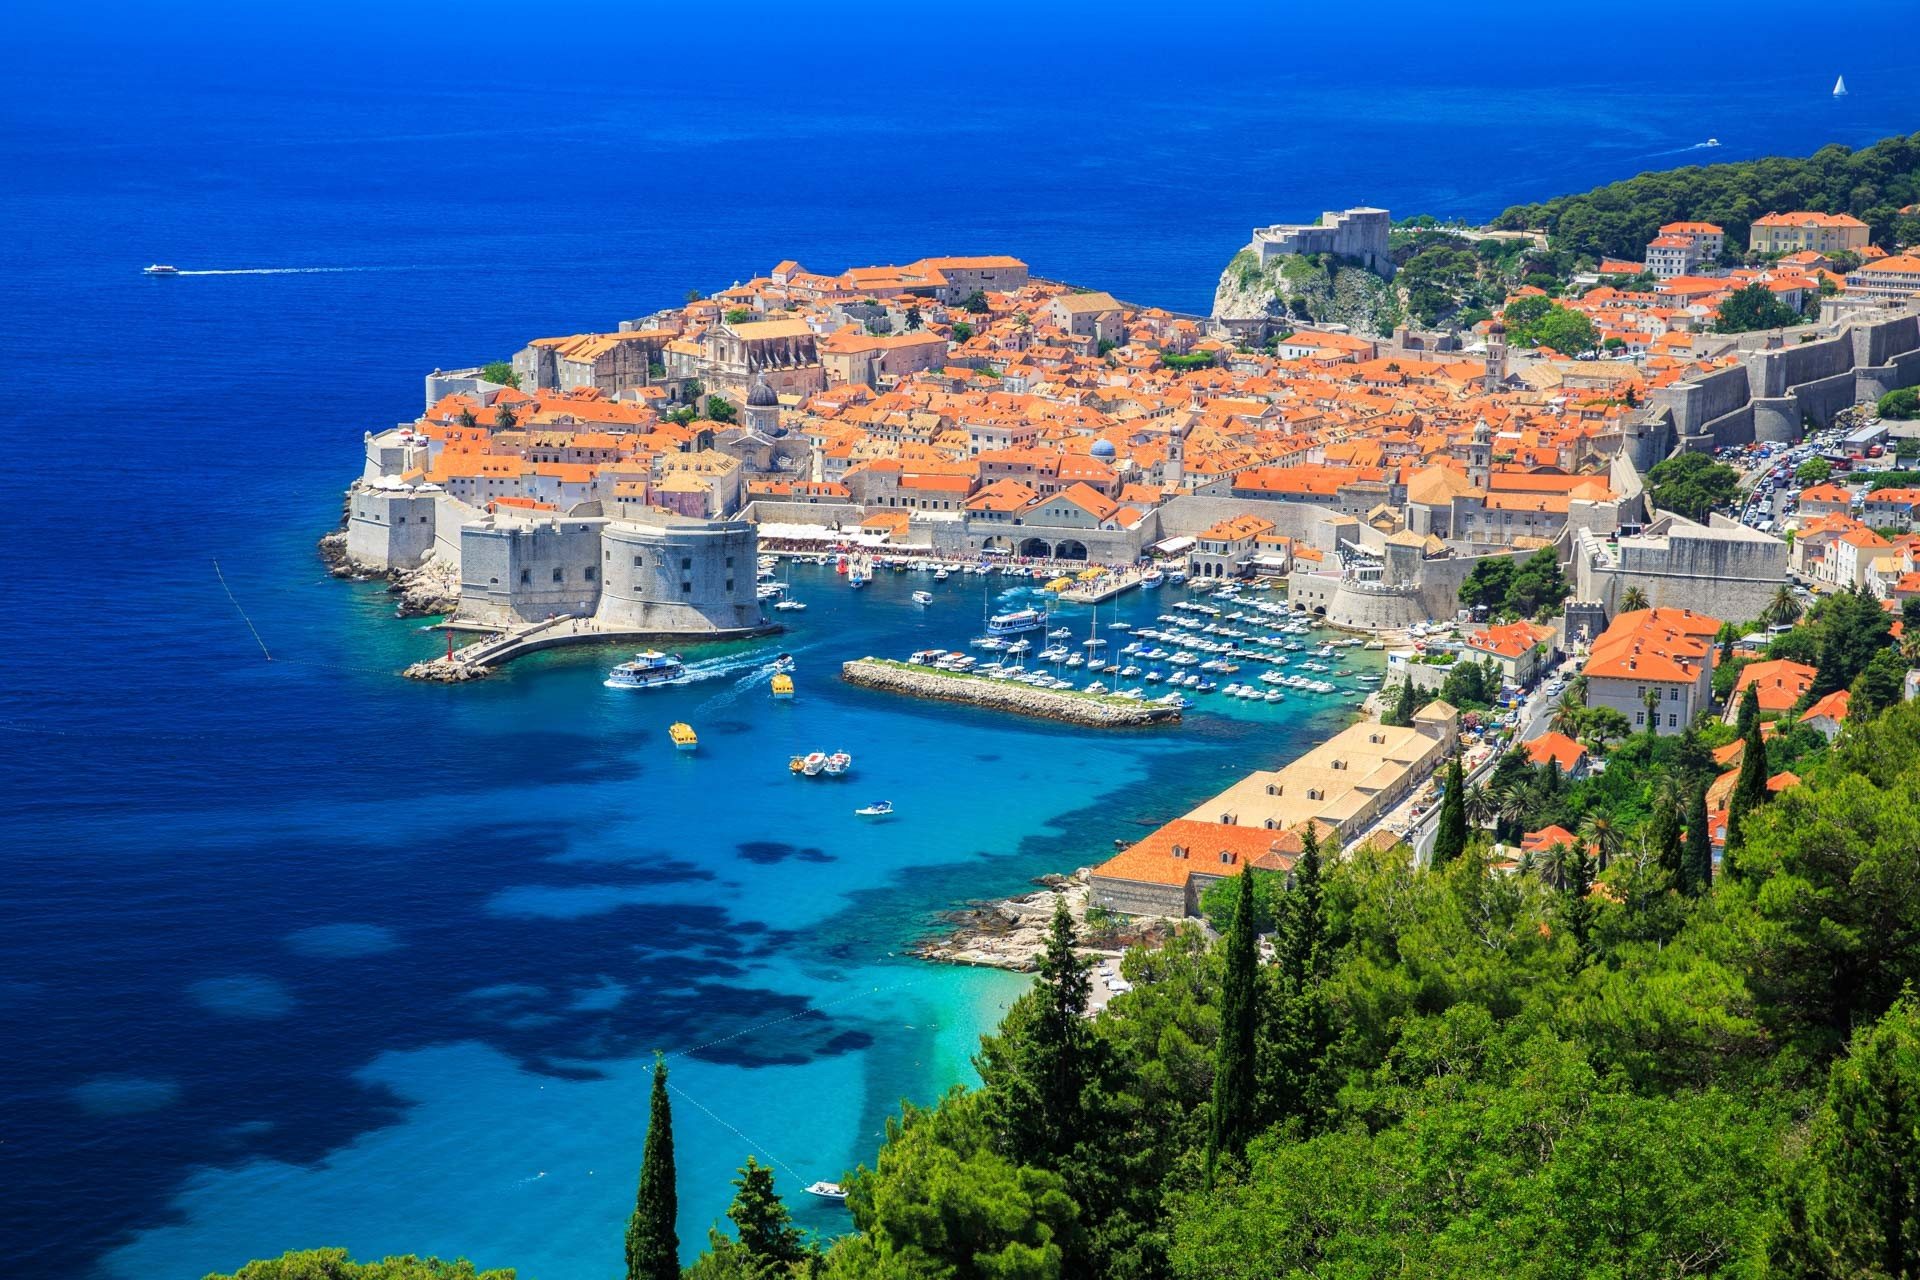 Dubrovnik – Dubrovnik –  Dubrovnik, Land and Cruise in 15 days (3 countries)